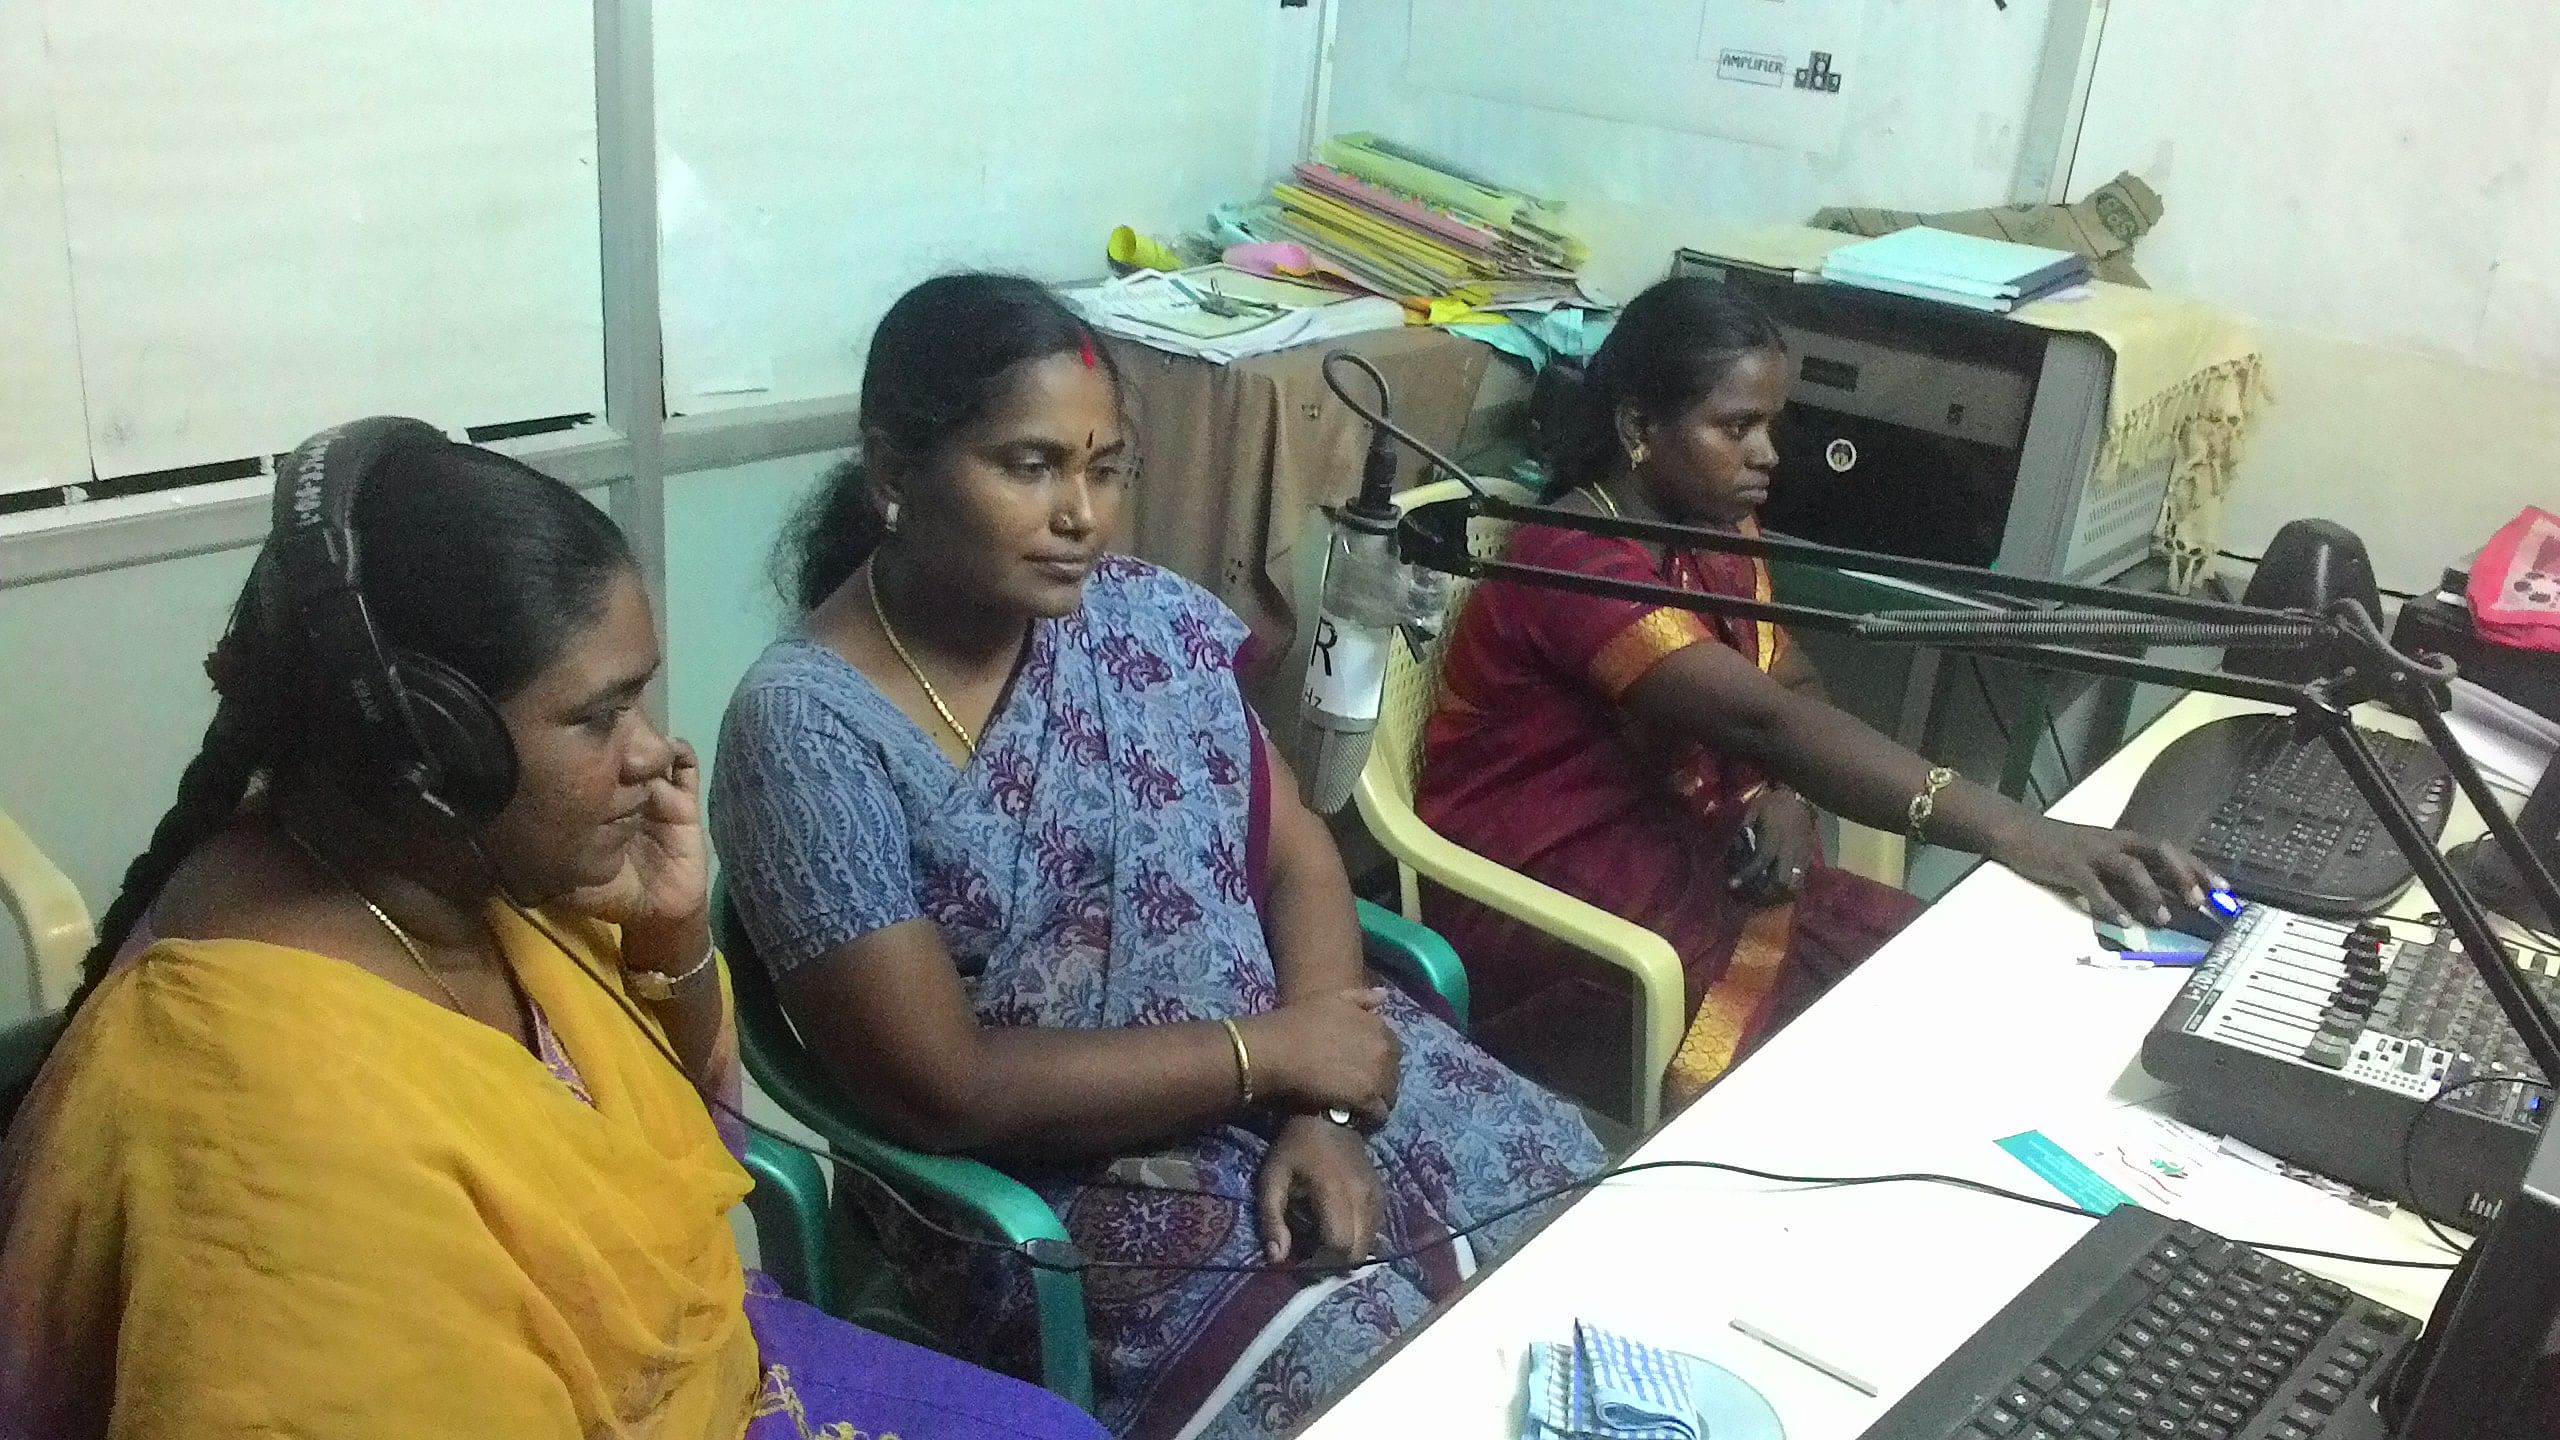 Periyar Community Radio airs programmes, which reinforce the social impact of activities that combat poverty and exclusion or promote women's health and education. (Courtesy: Periyar Community Radio)